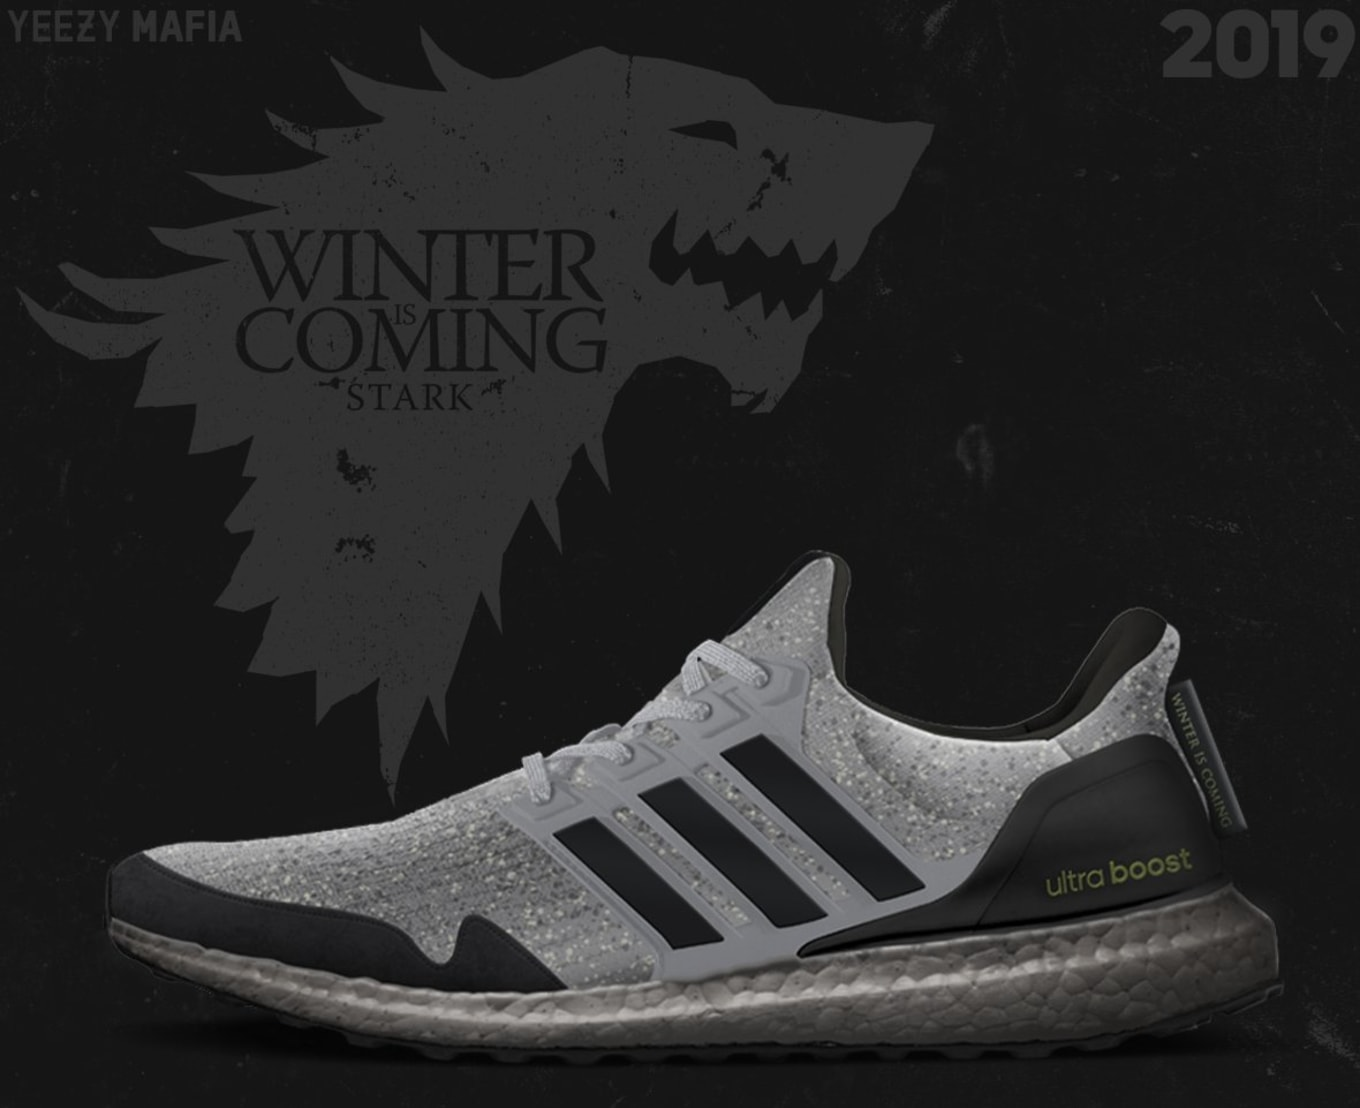 ea4ad6a49a475 Game of Thrones x Adidas Ultra Boost Sneaker Collaboration 2019 ...